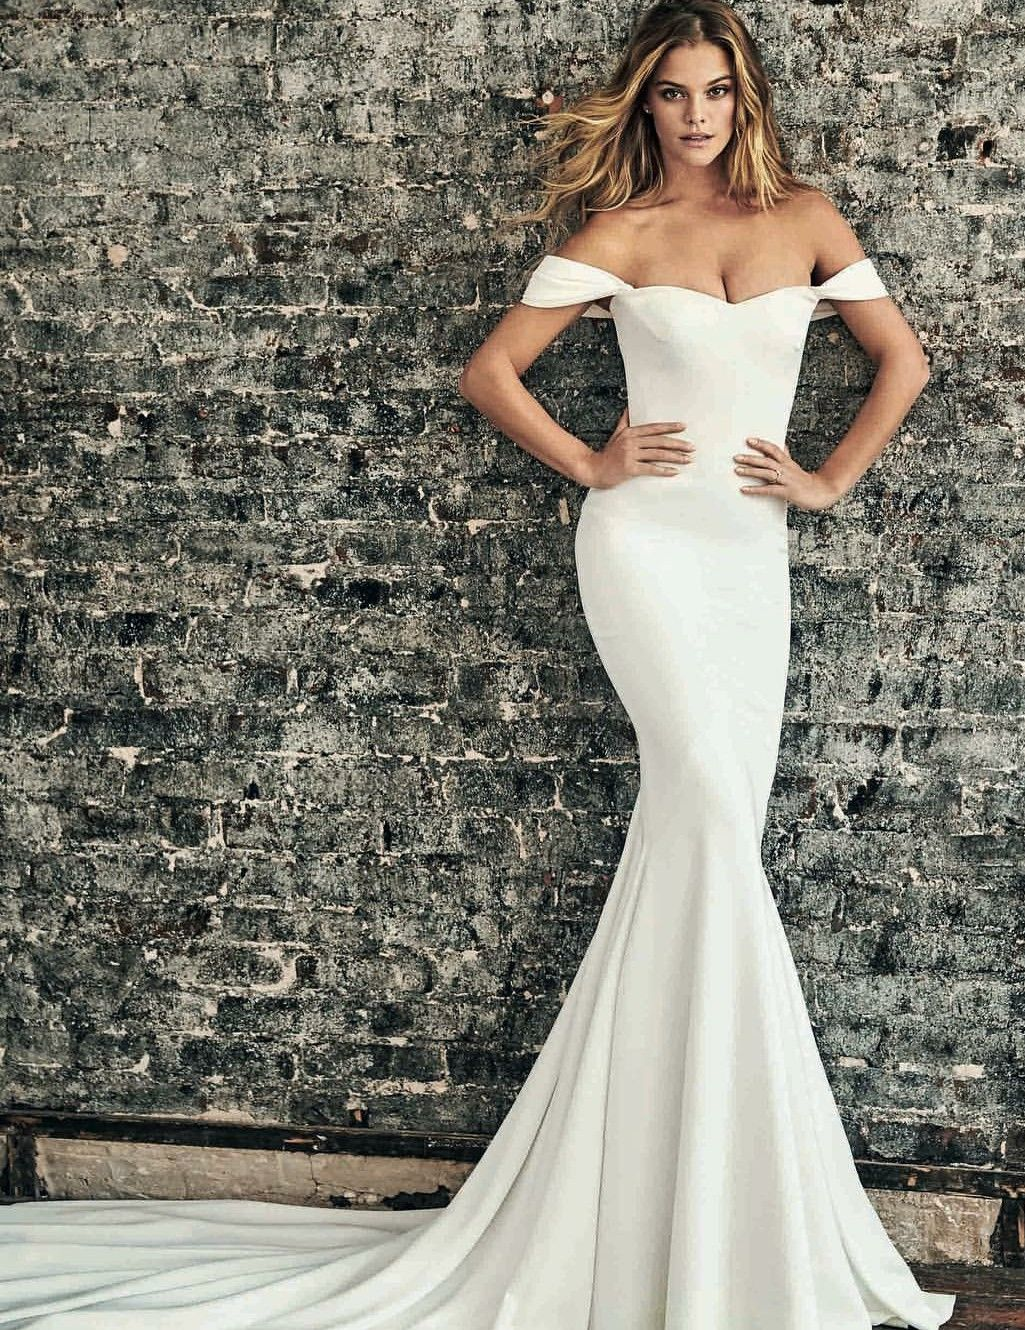 29 The Best Mermaid Wedding Dresses - wedding dress #mermaiddress #weddingdress #weddinggowns